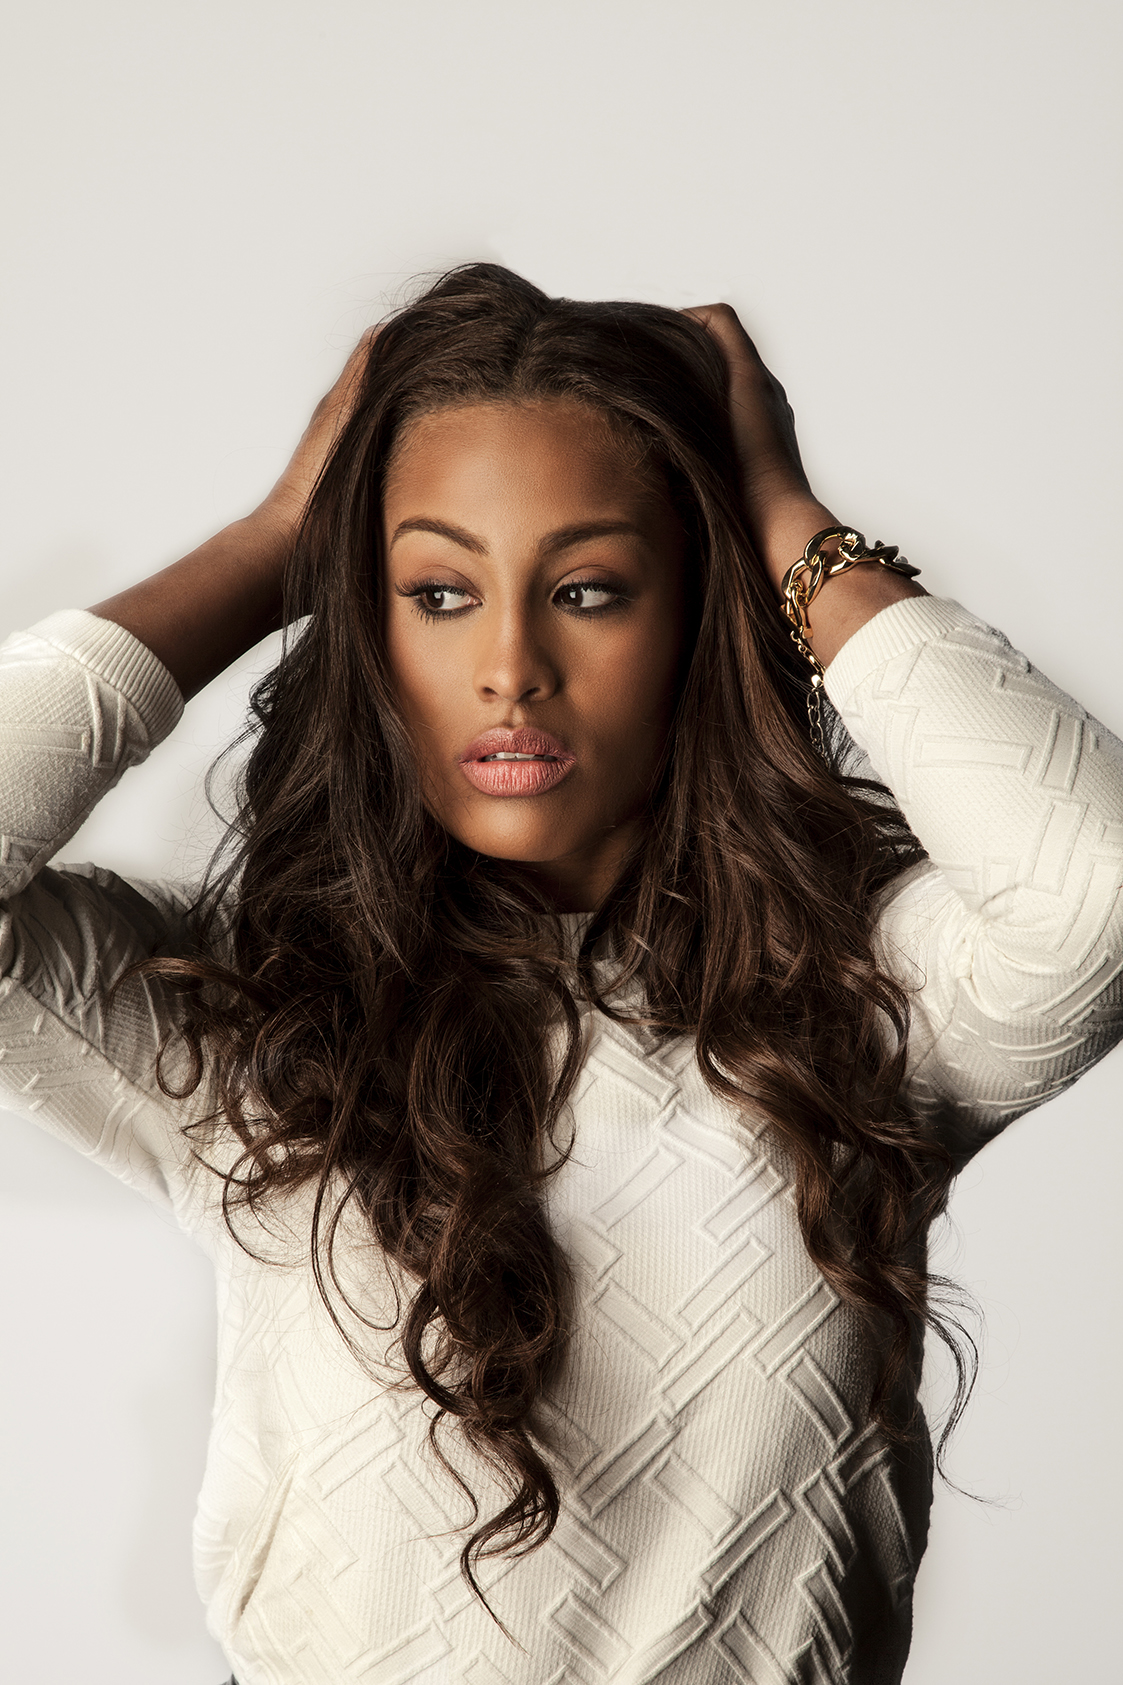 Skylar_Diggins_Ashley_sky_Walker-165_.jpg